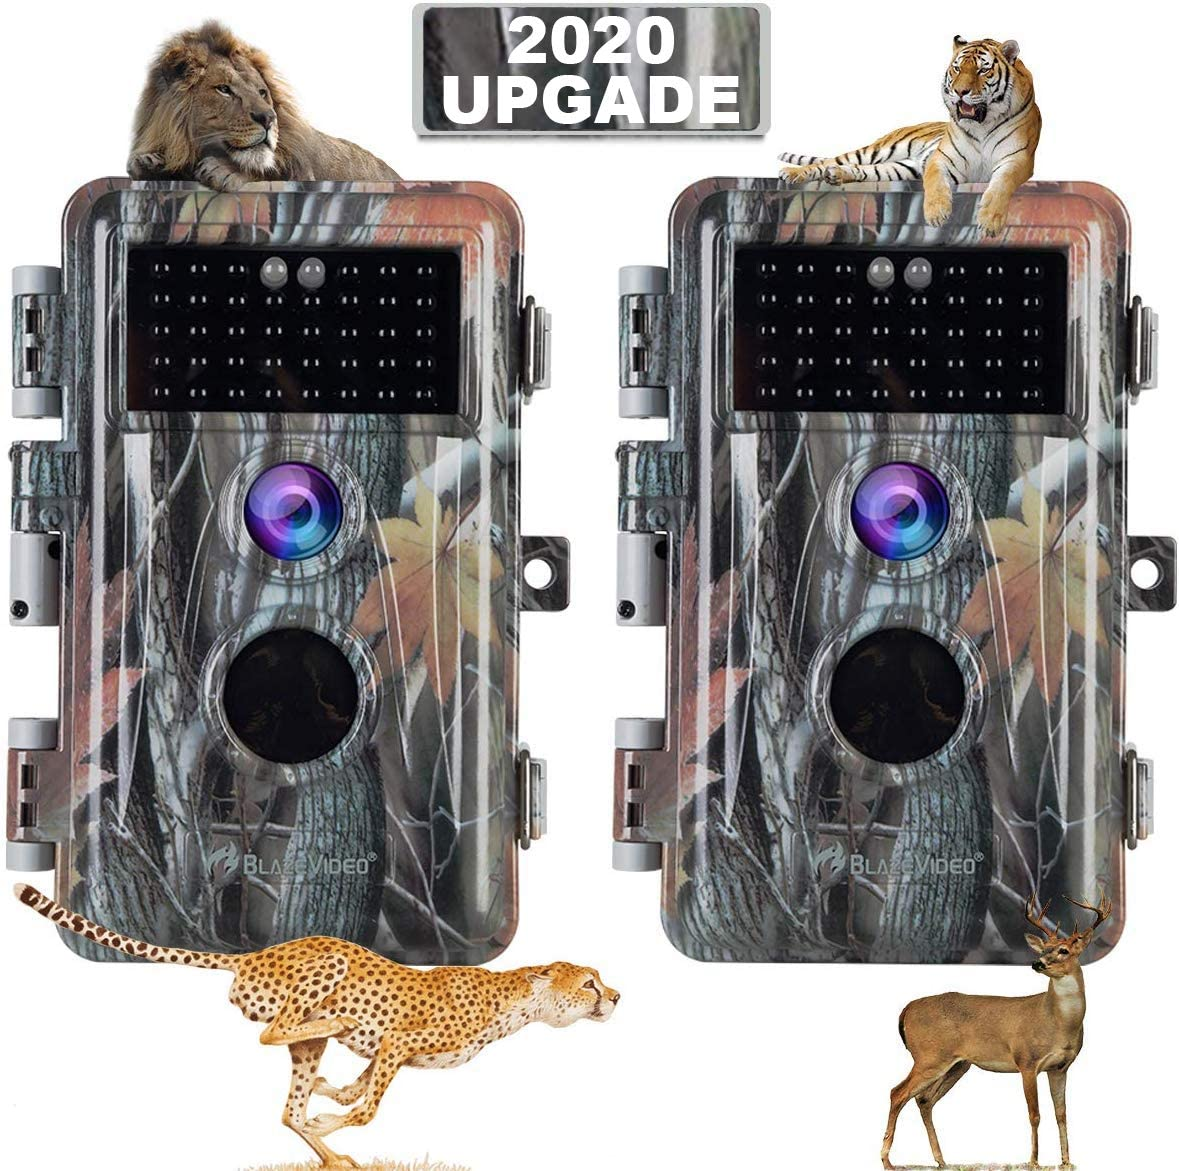 2020 Upgrade 2-Pack Night Vision Game Trail Cameras 16MP 1080P No Glow Hunters Deer Hunting Cams IP66 Waterproof Password Protected Motion Activated Photo Video Model, Time Stamp Time Lapse